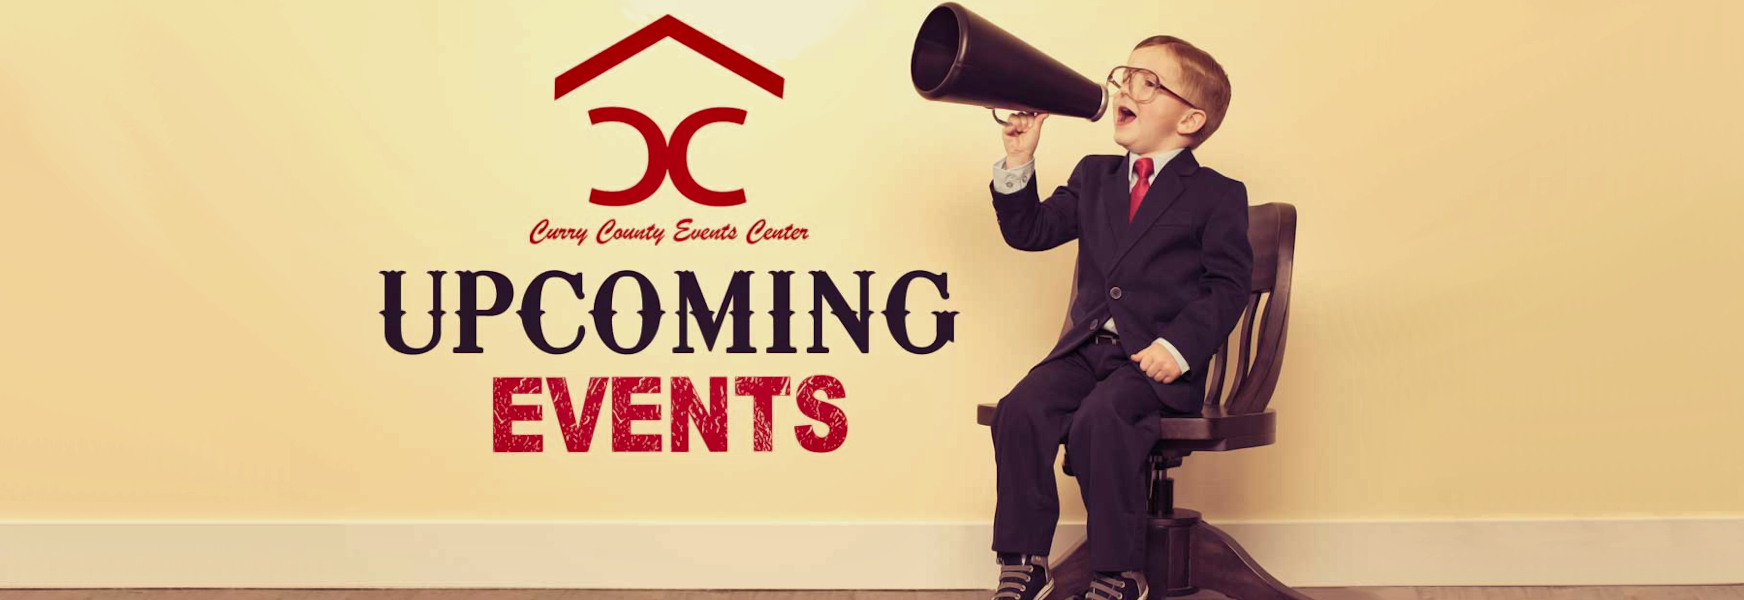 Curry County Events Center Upcoming Events